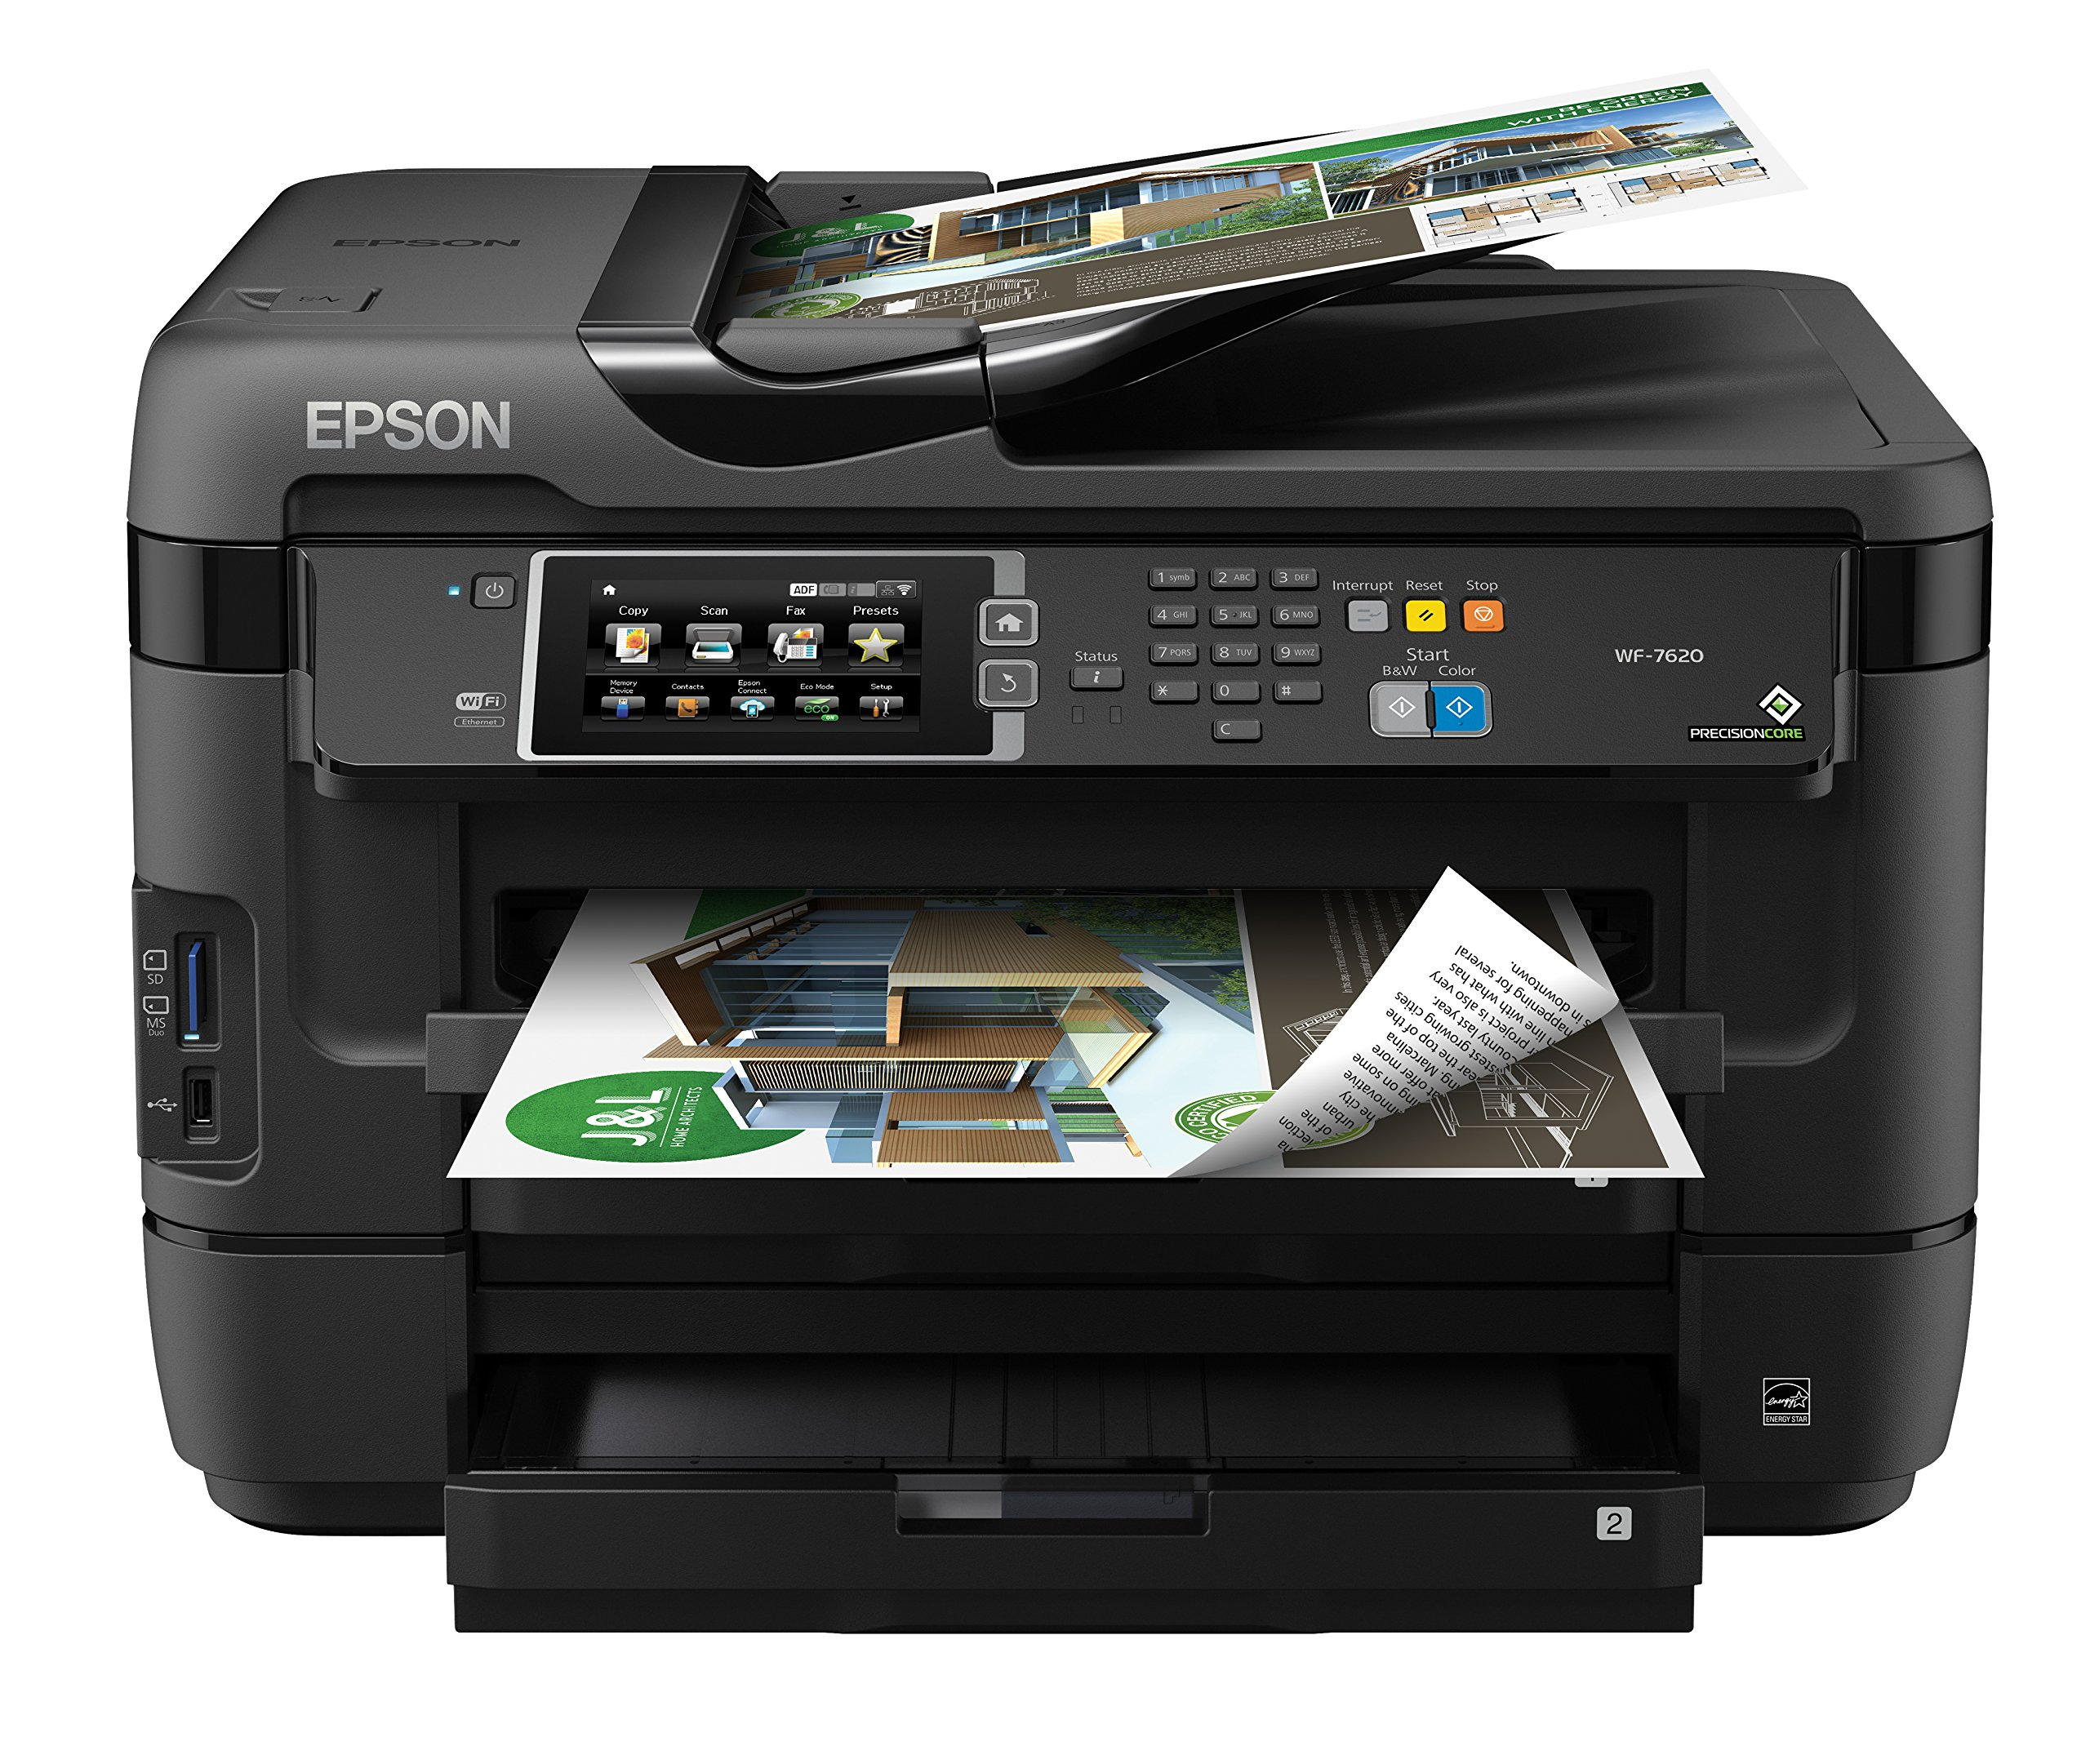 Epson WorkForce WF-7610 Wireless Color All-in-One Inkjet Printer with Scanner and Copier by Epson